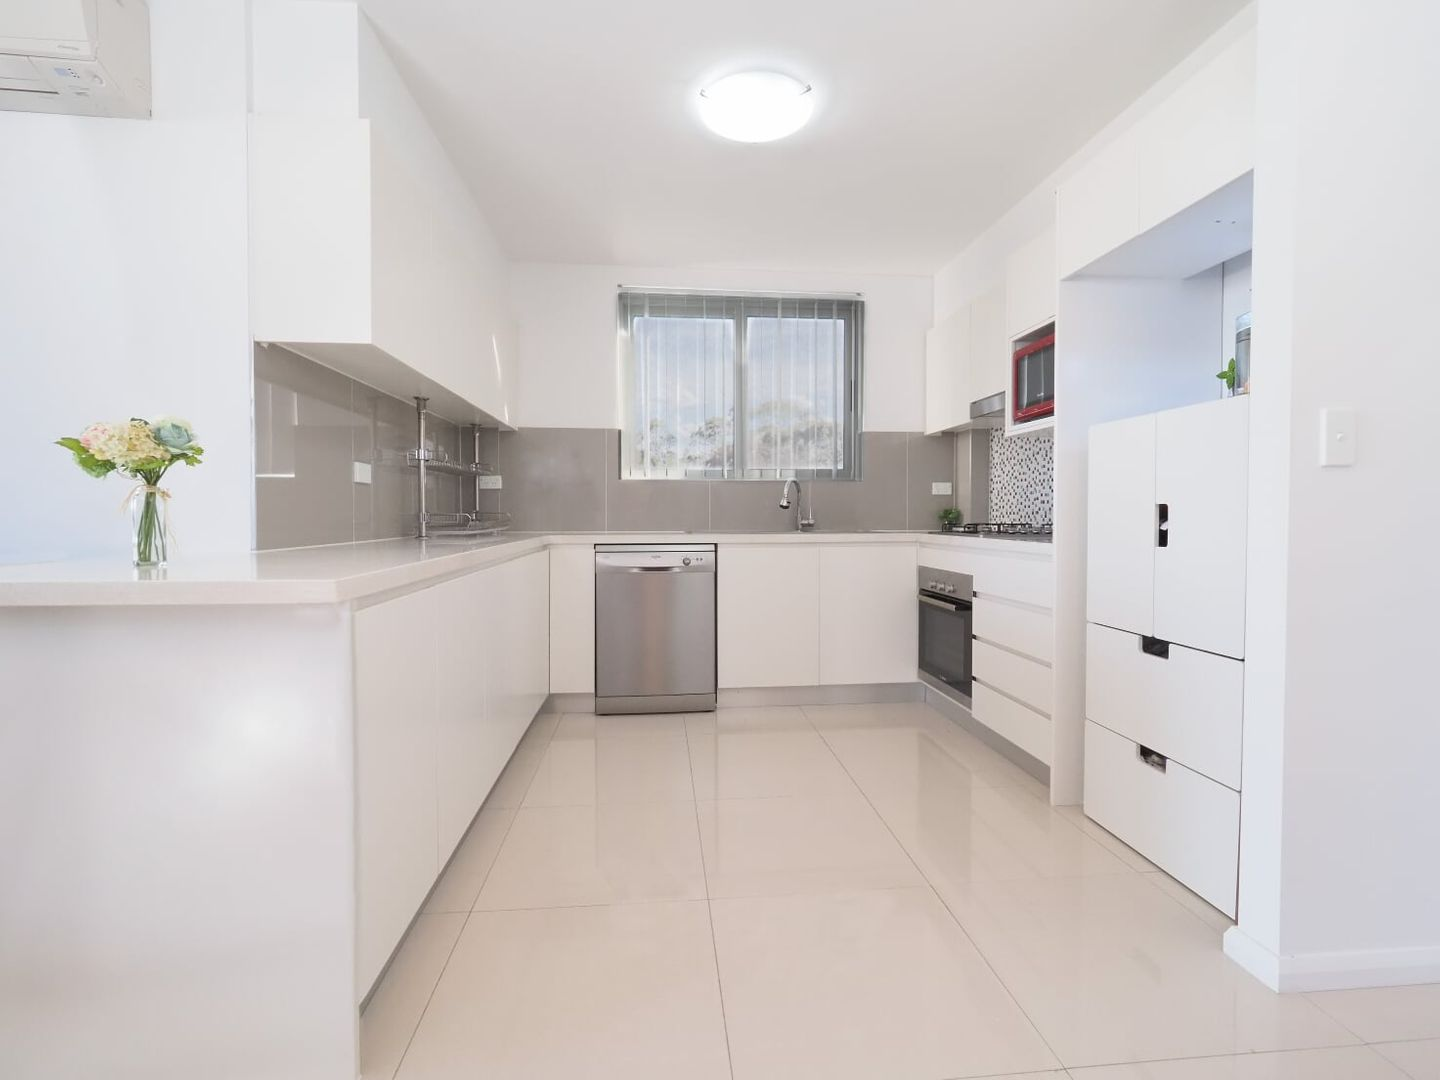 Apartment Sold - 22/127-129 Jersey Street North, Asquith